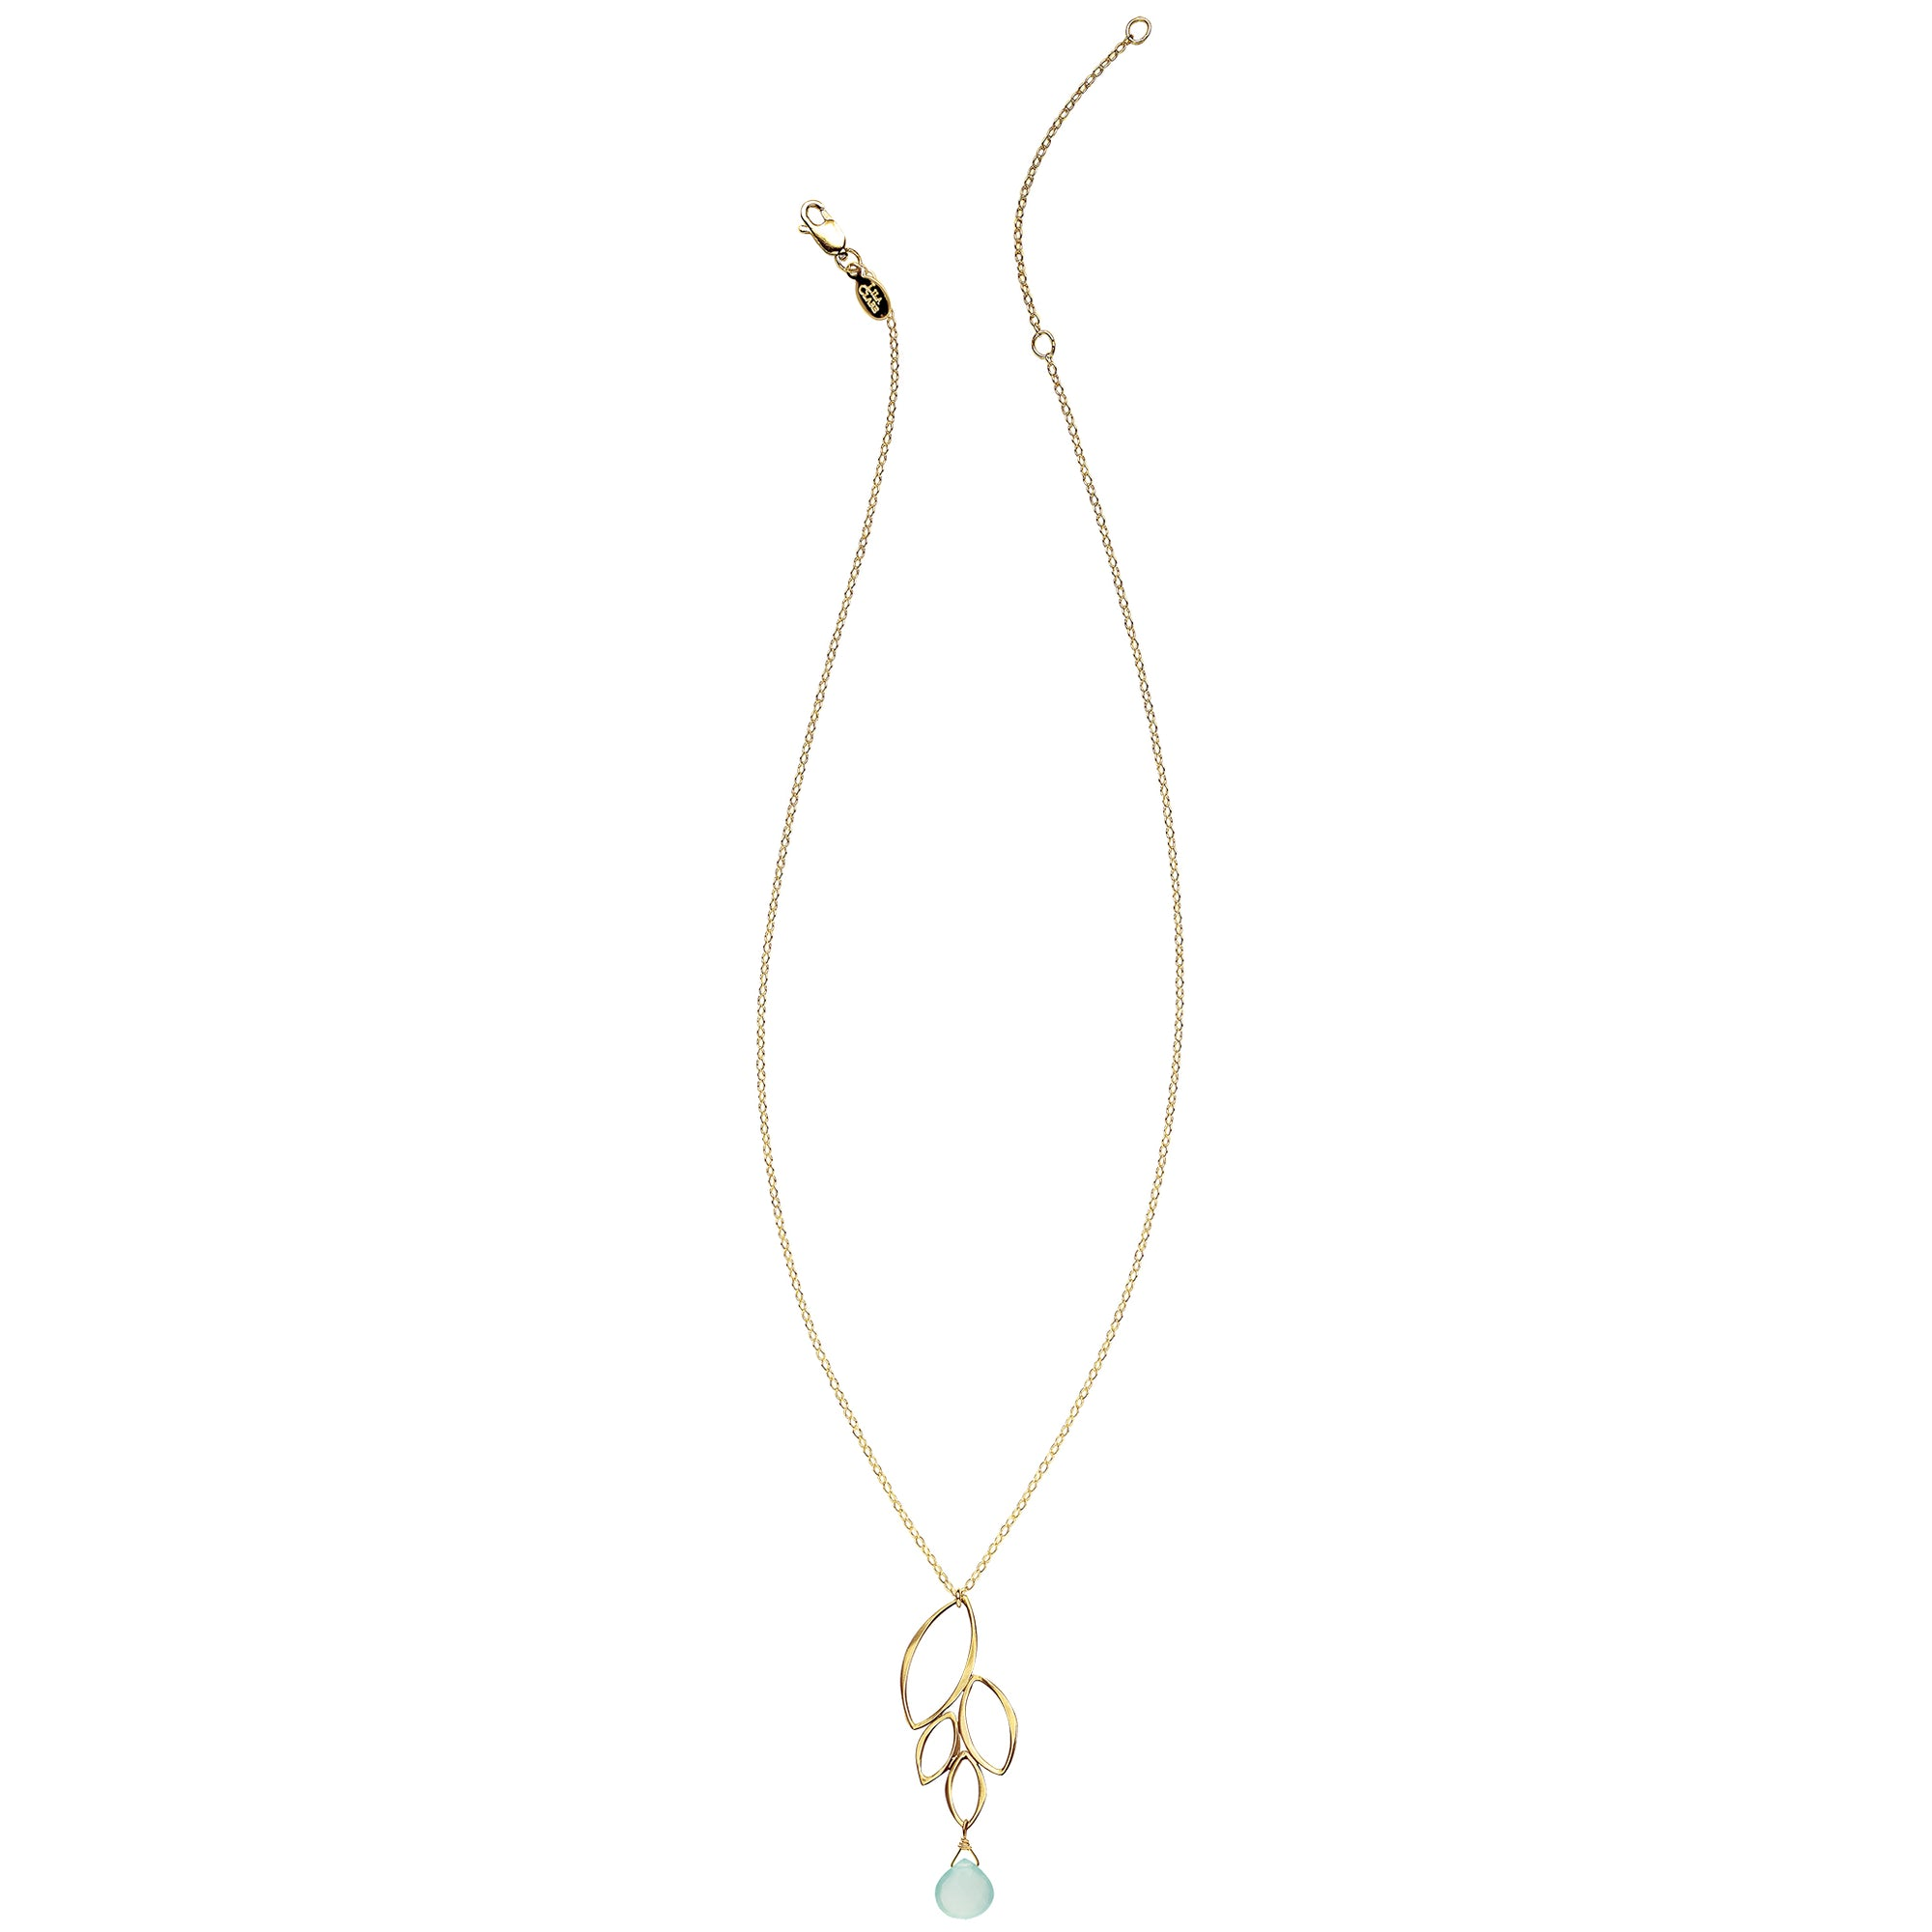 Ella Gold Four Leaf Drop Necklace with Gemstone